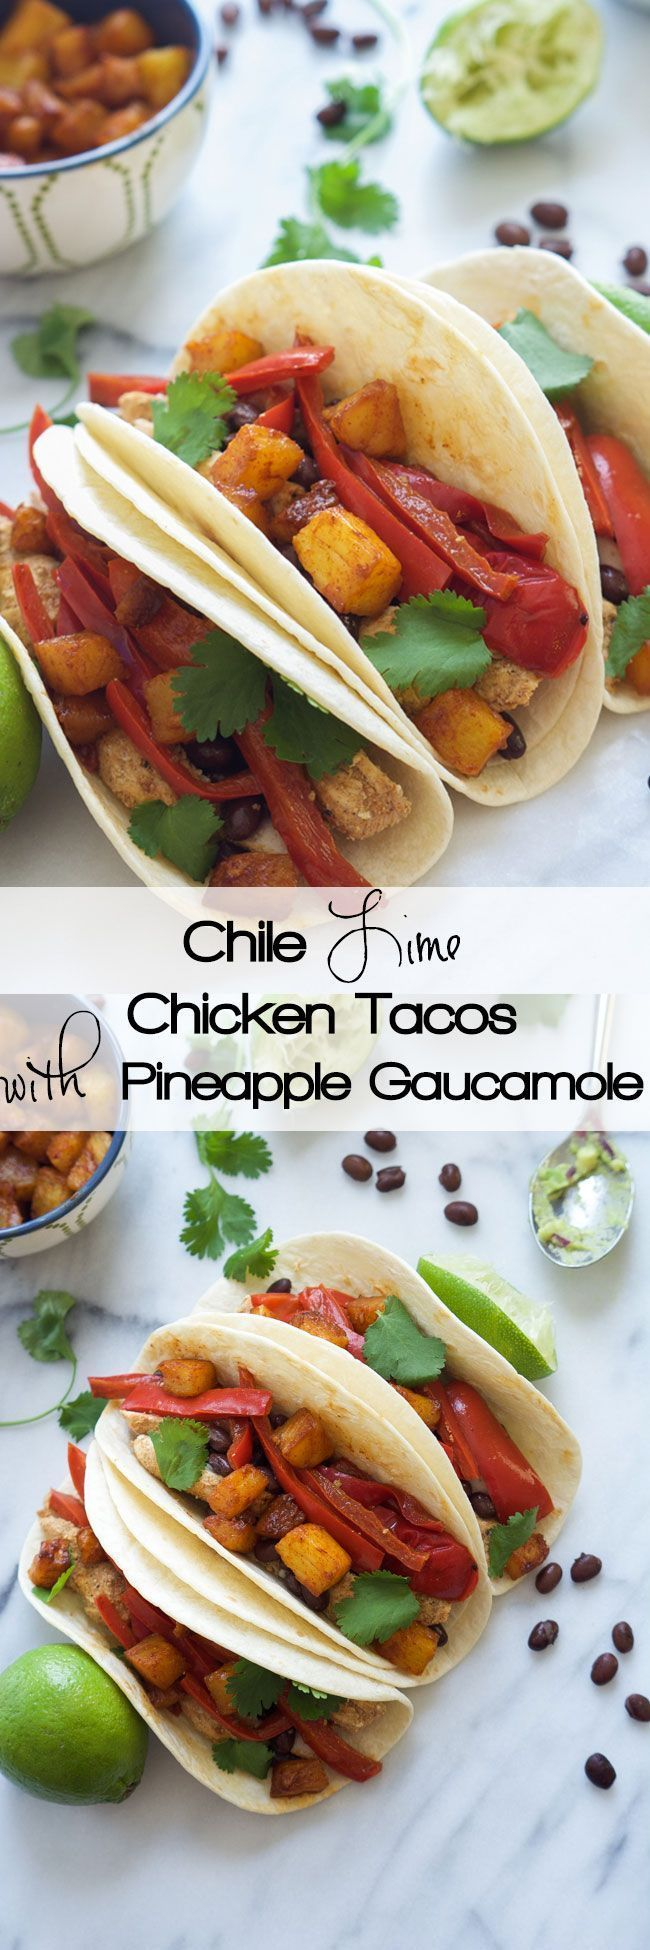 Spicy and citrus Chile Lime Chicken Tacos with Pineapple Guacamole are ...